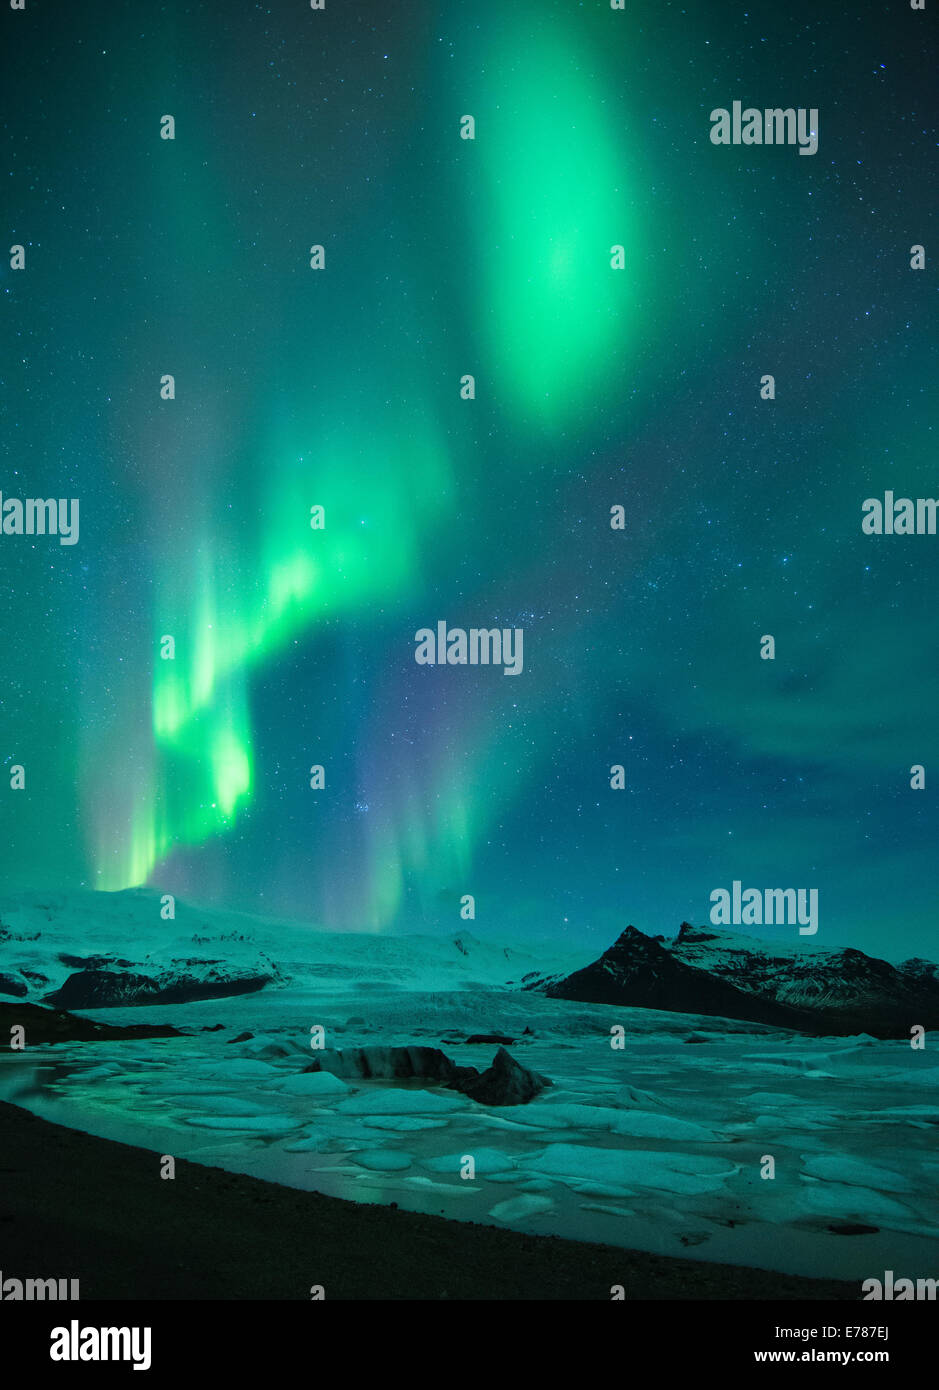 the Northern Lights (Aurora Borealis) over the Vatnajokull galcier and Fjallsarlon, eastern Iceland Stock Photo